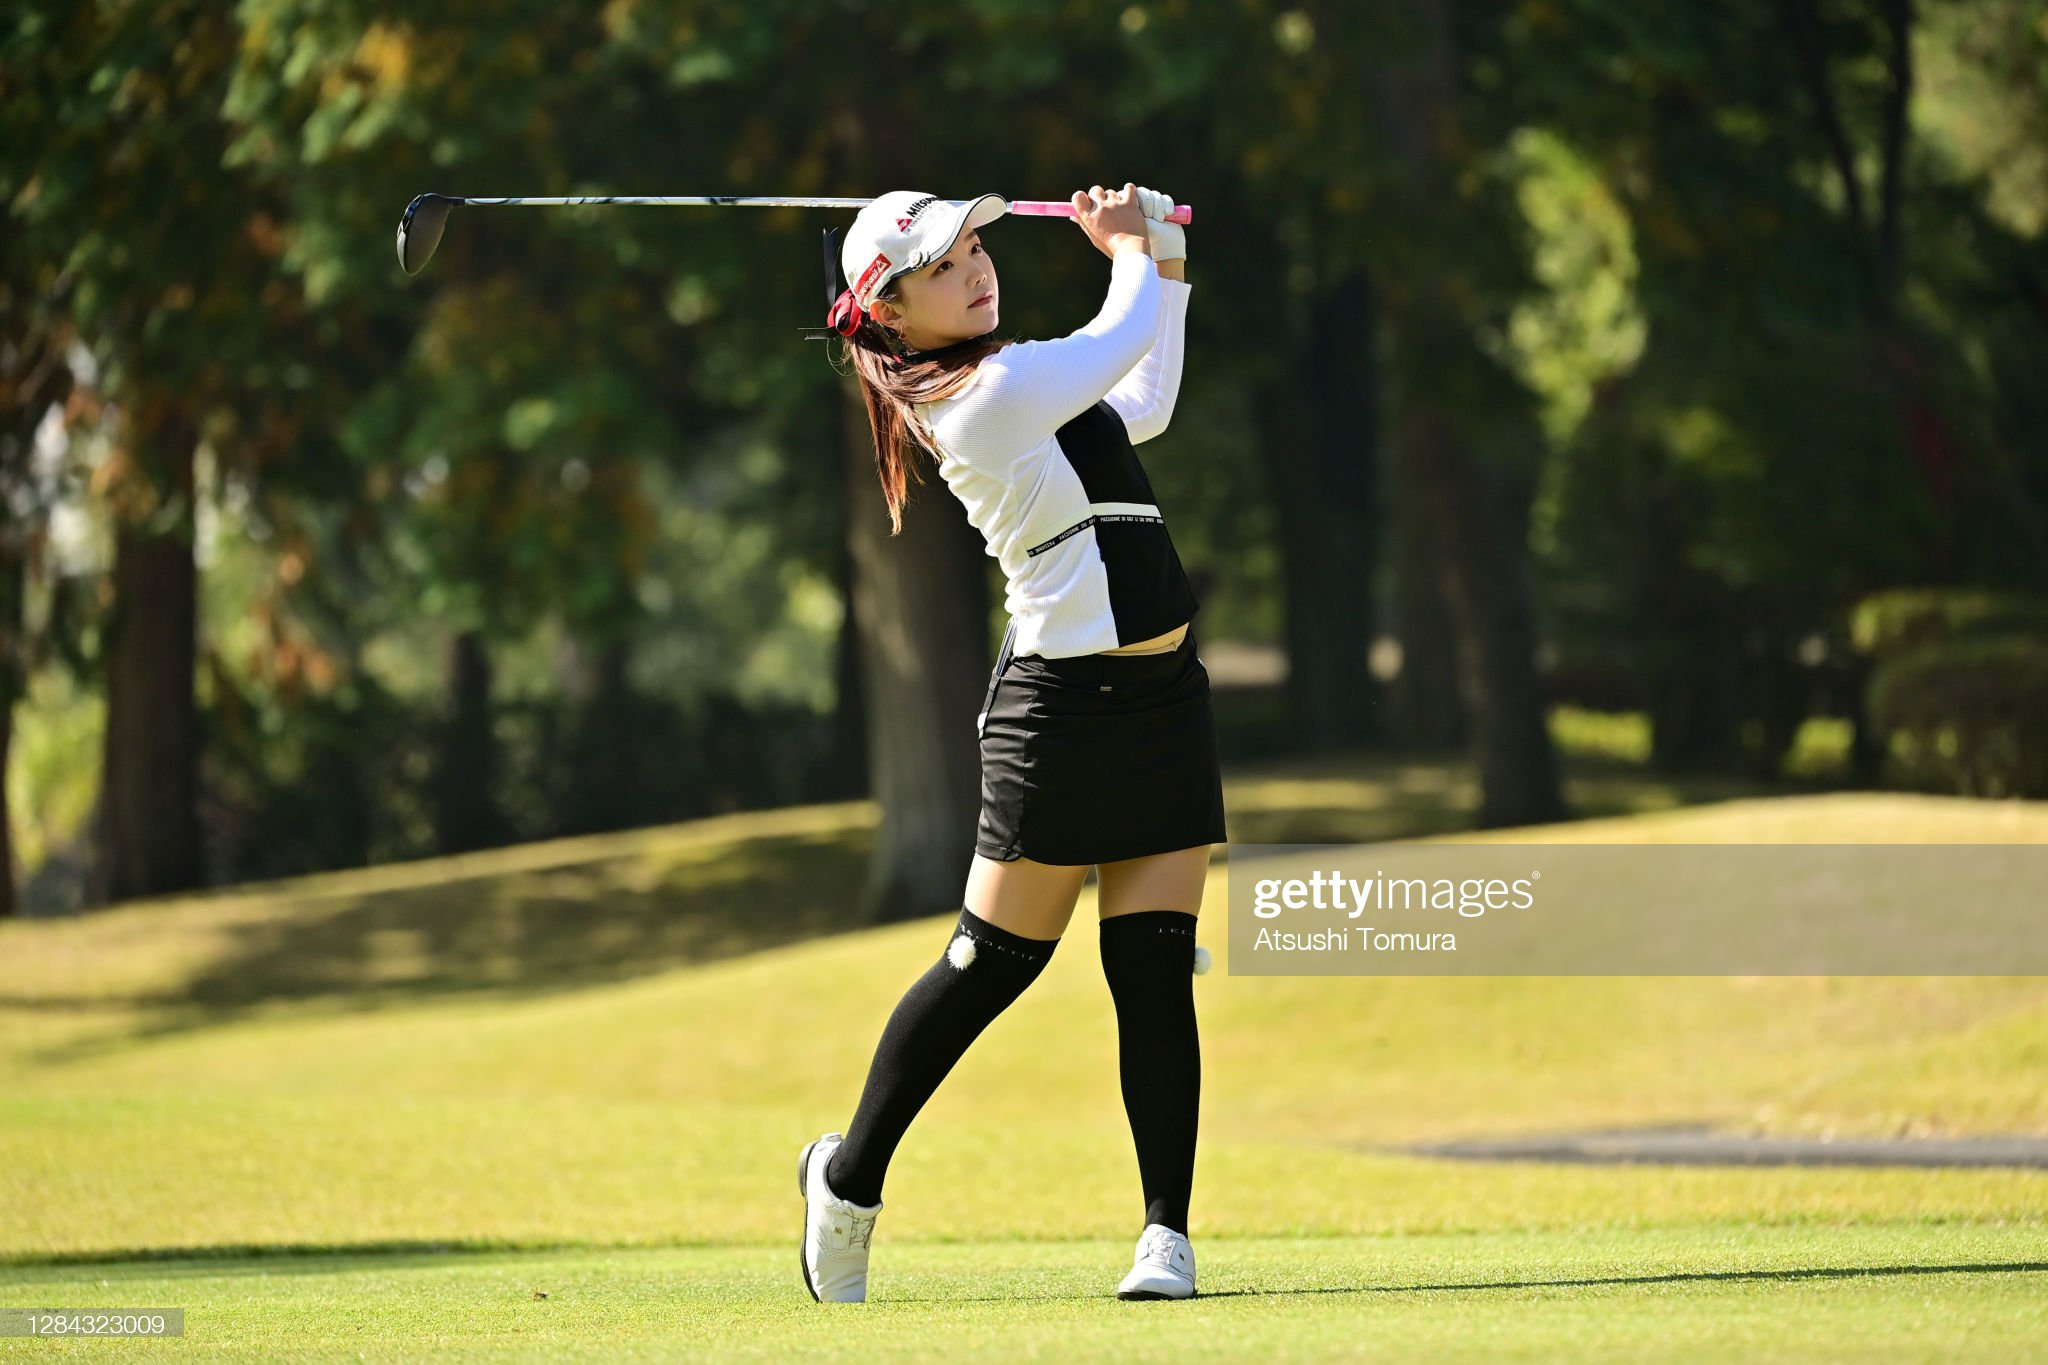 https://media.gettyimages.com/photos/yuting-seki-of-china-hits-her-tee-shot-on-the-9th-hole-during-the-picture-id1284323009?s=2048x2048